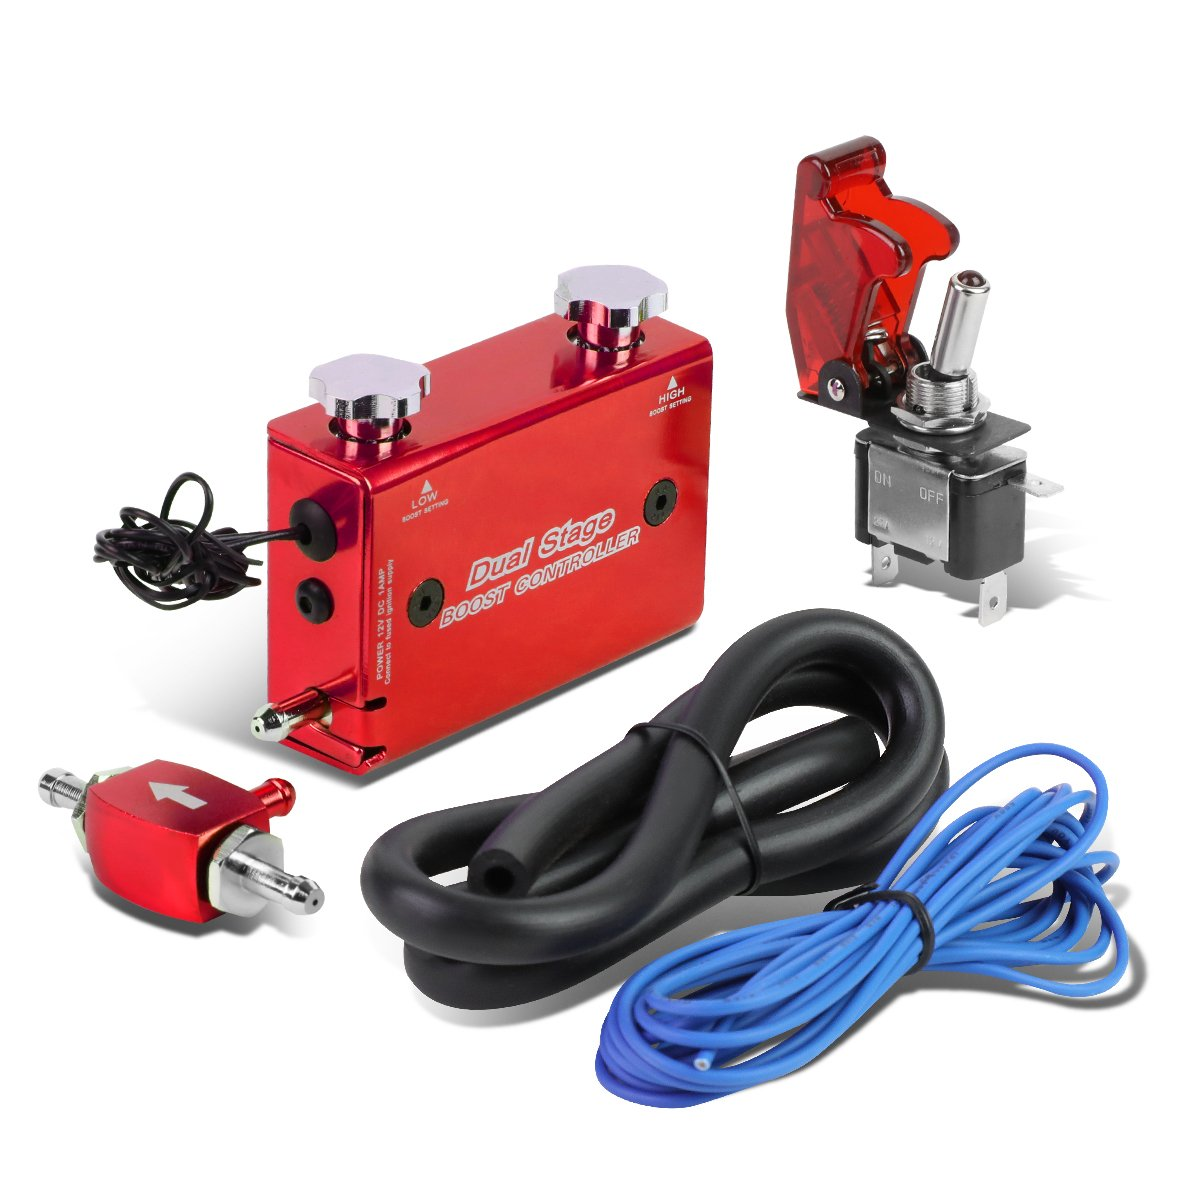 Dual Stage Turbocharger Boost Electronic Controller Kit + Rocket Switch (Red) Auto Dynasty